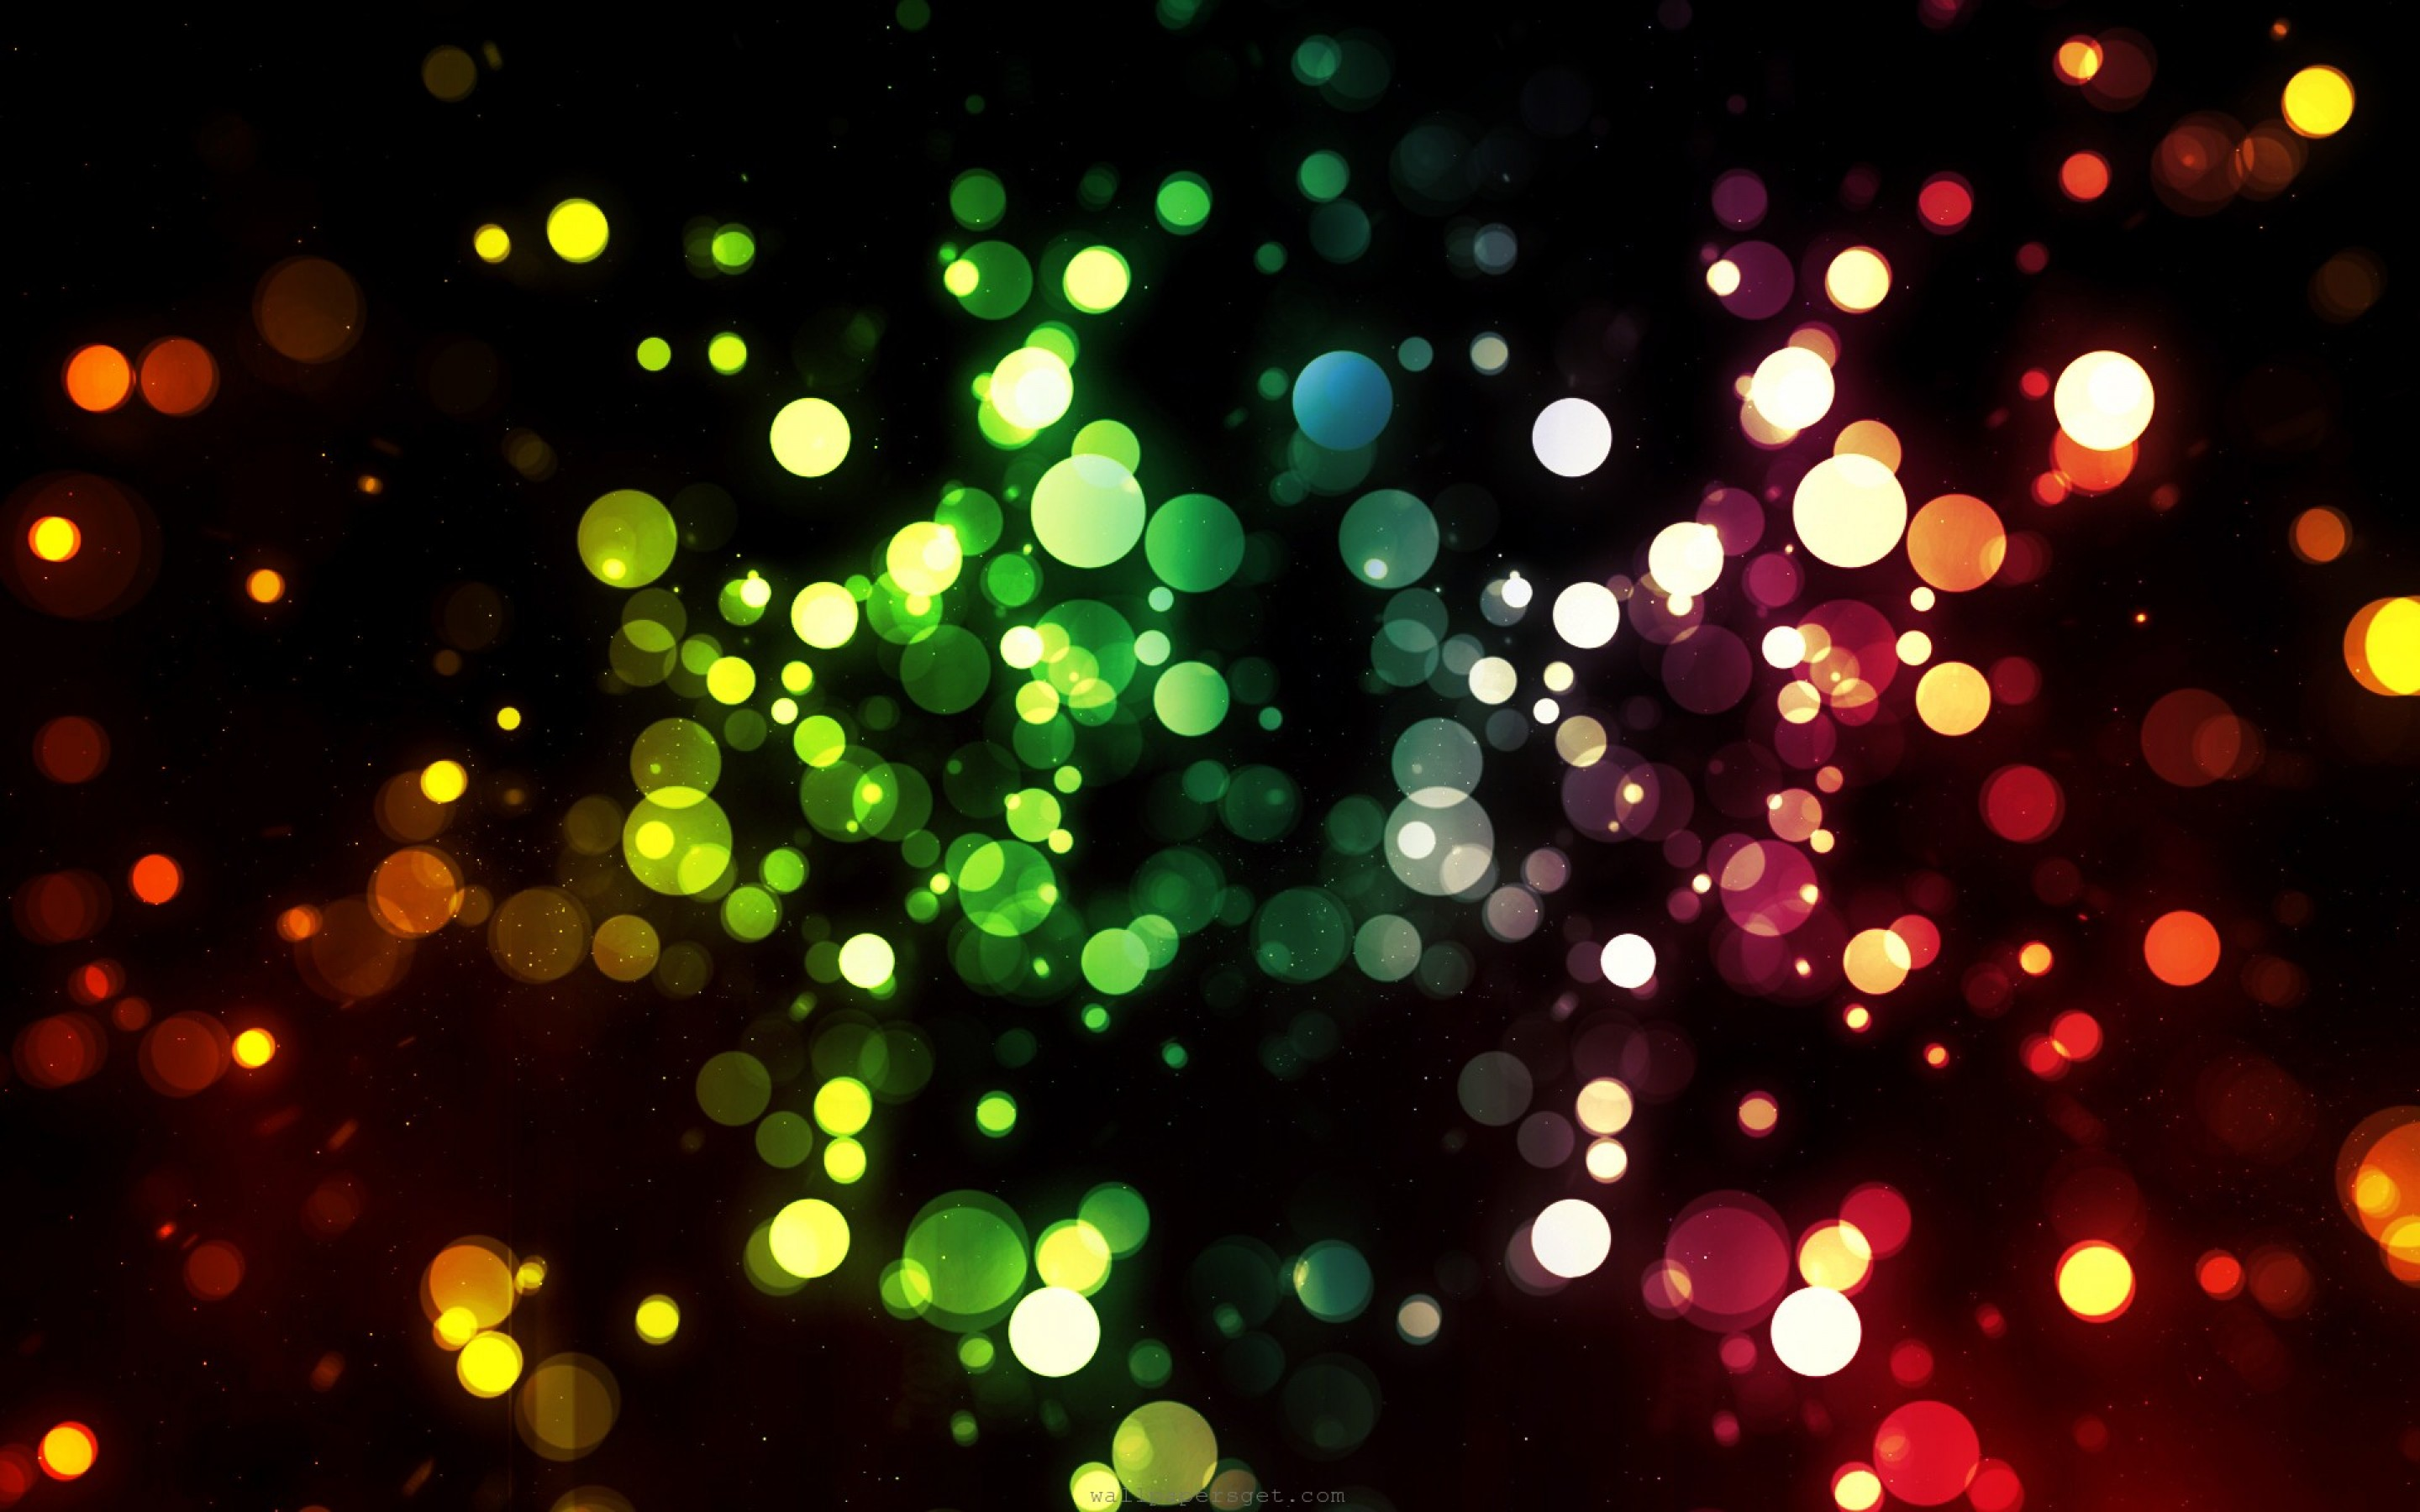 Free Colorful Abstract Backgrounds